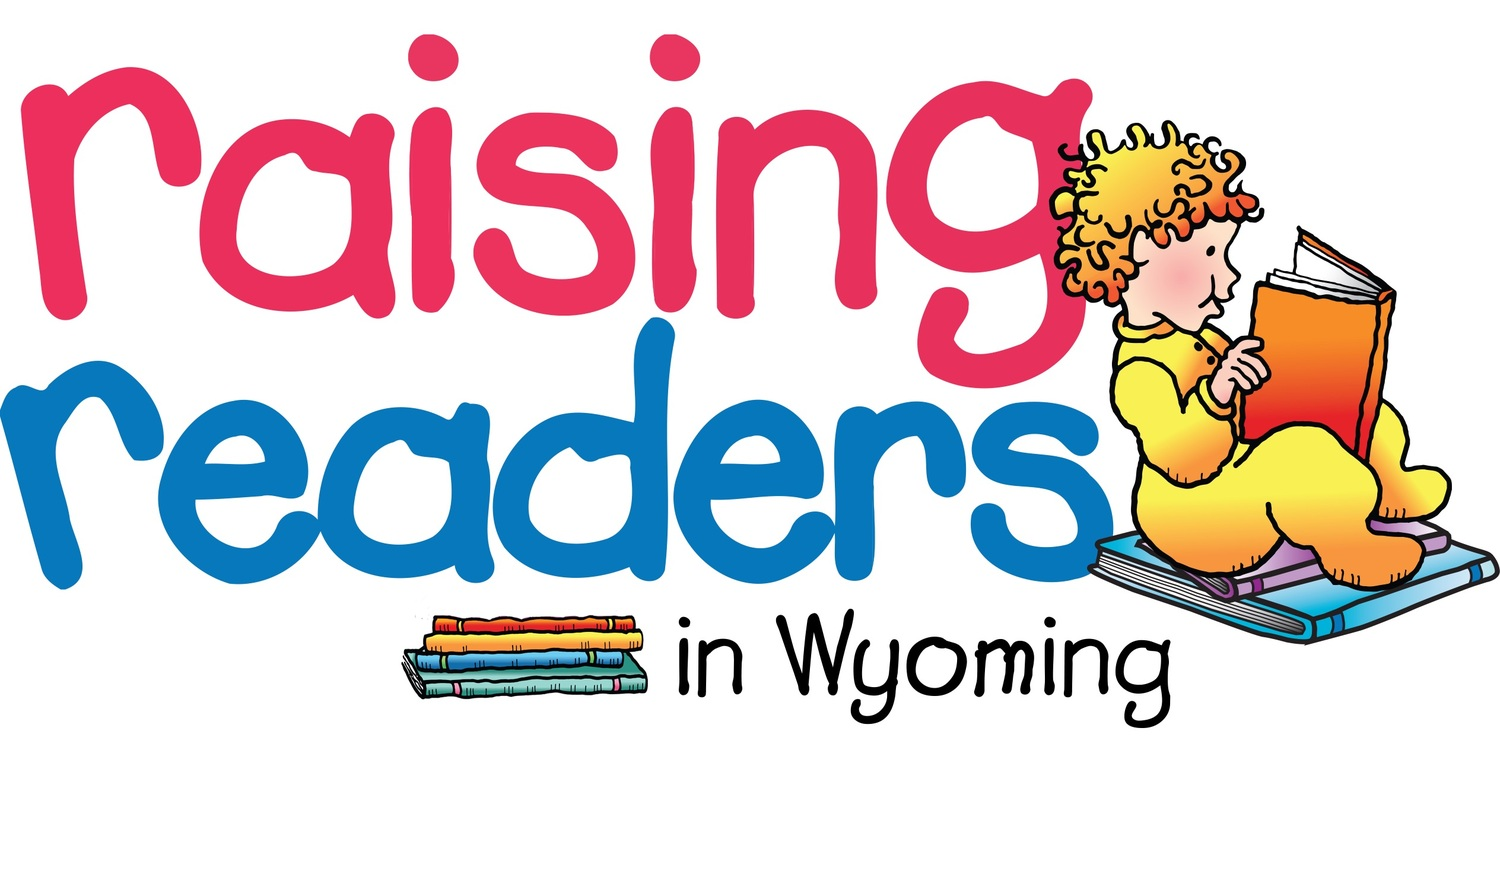 Raising Readers in Wyoming